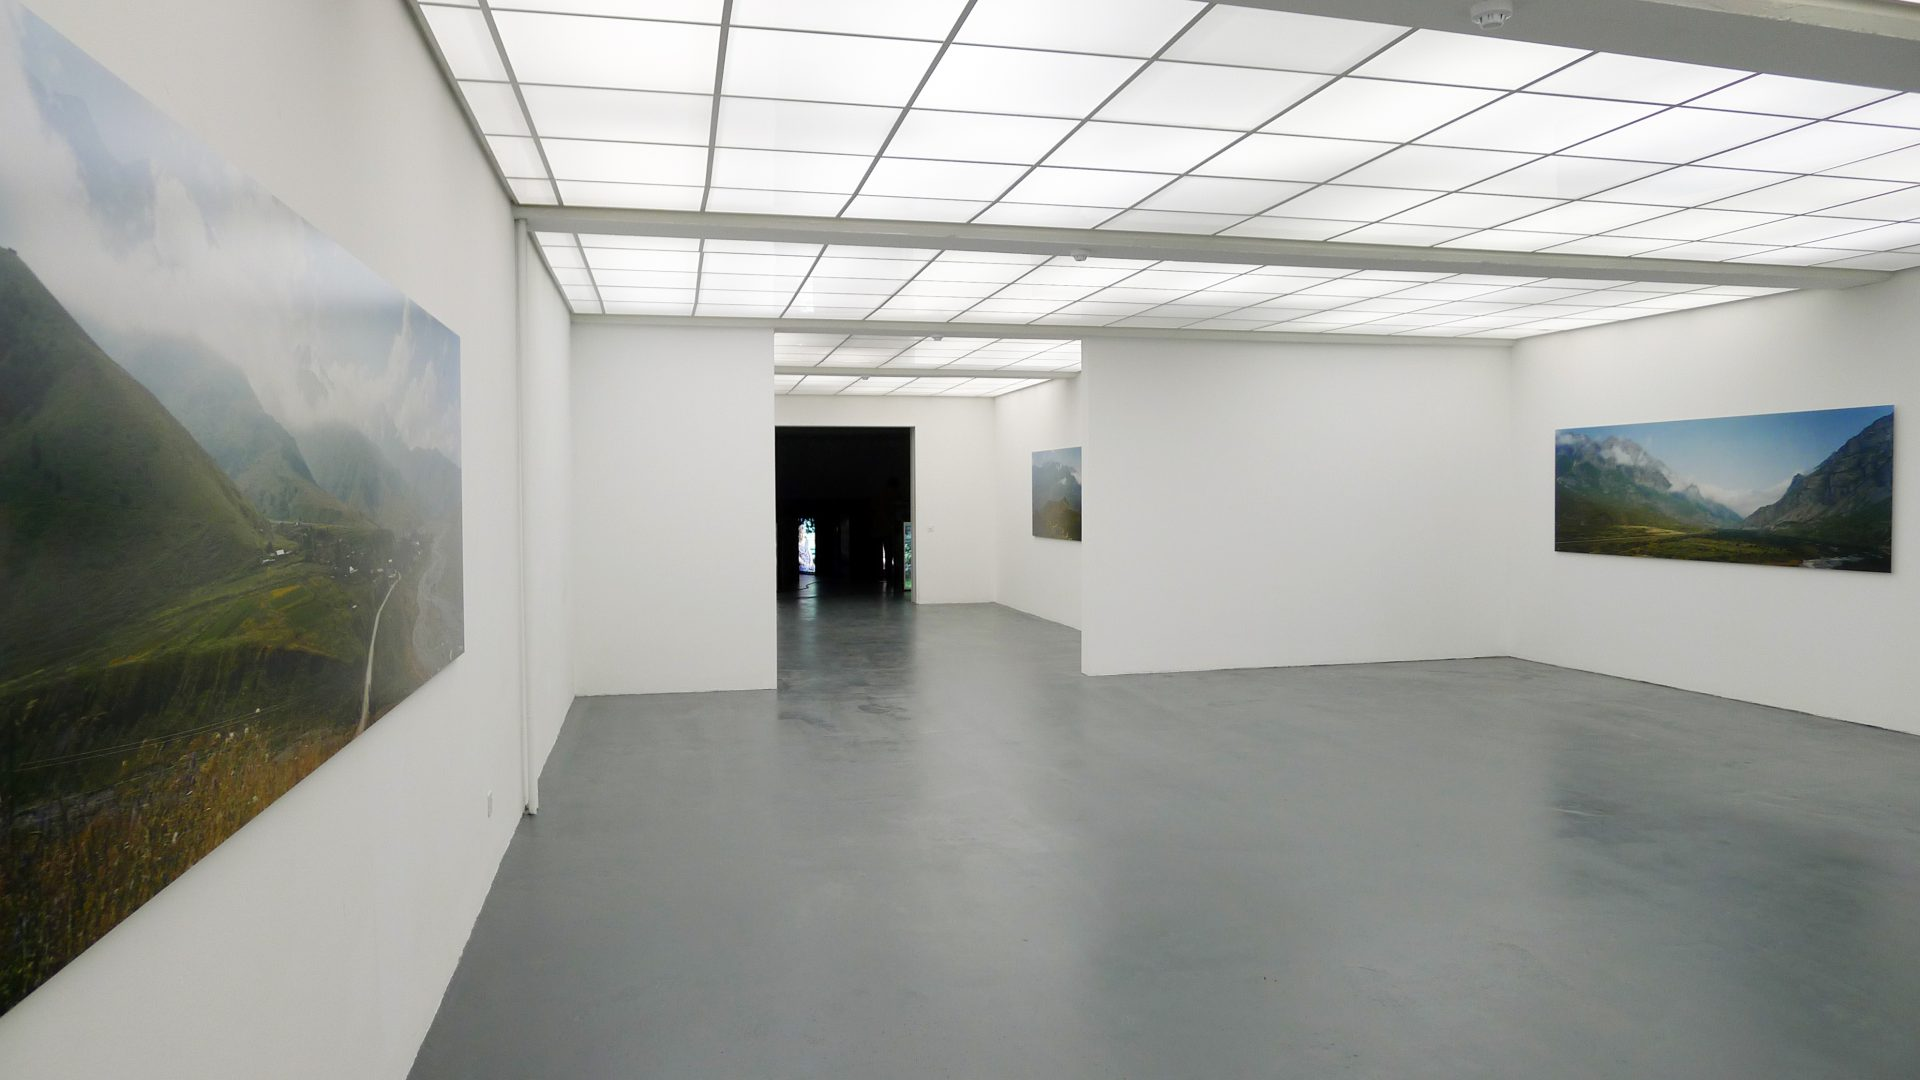 Starie Novosti (Old News), installation view at Kunsthaus Baselland, Switzerland, 2012